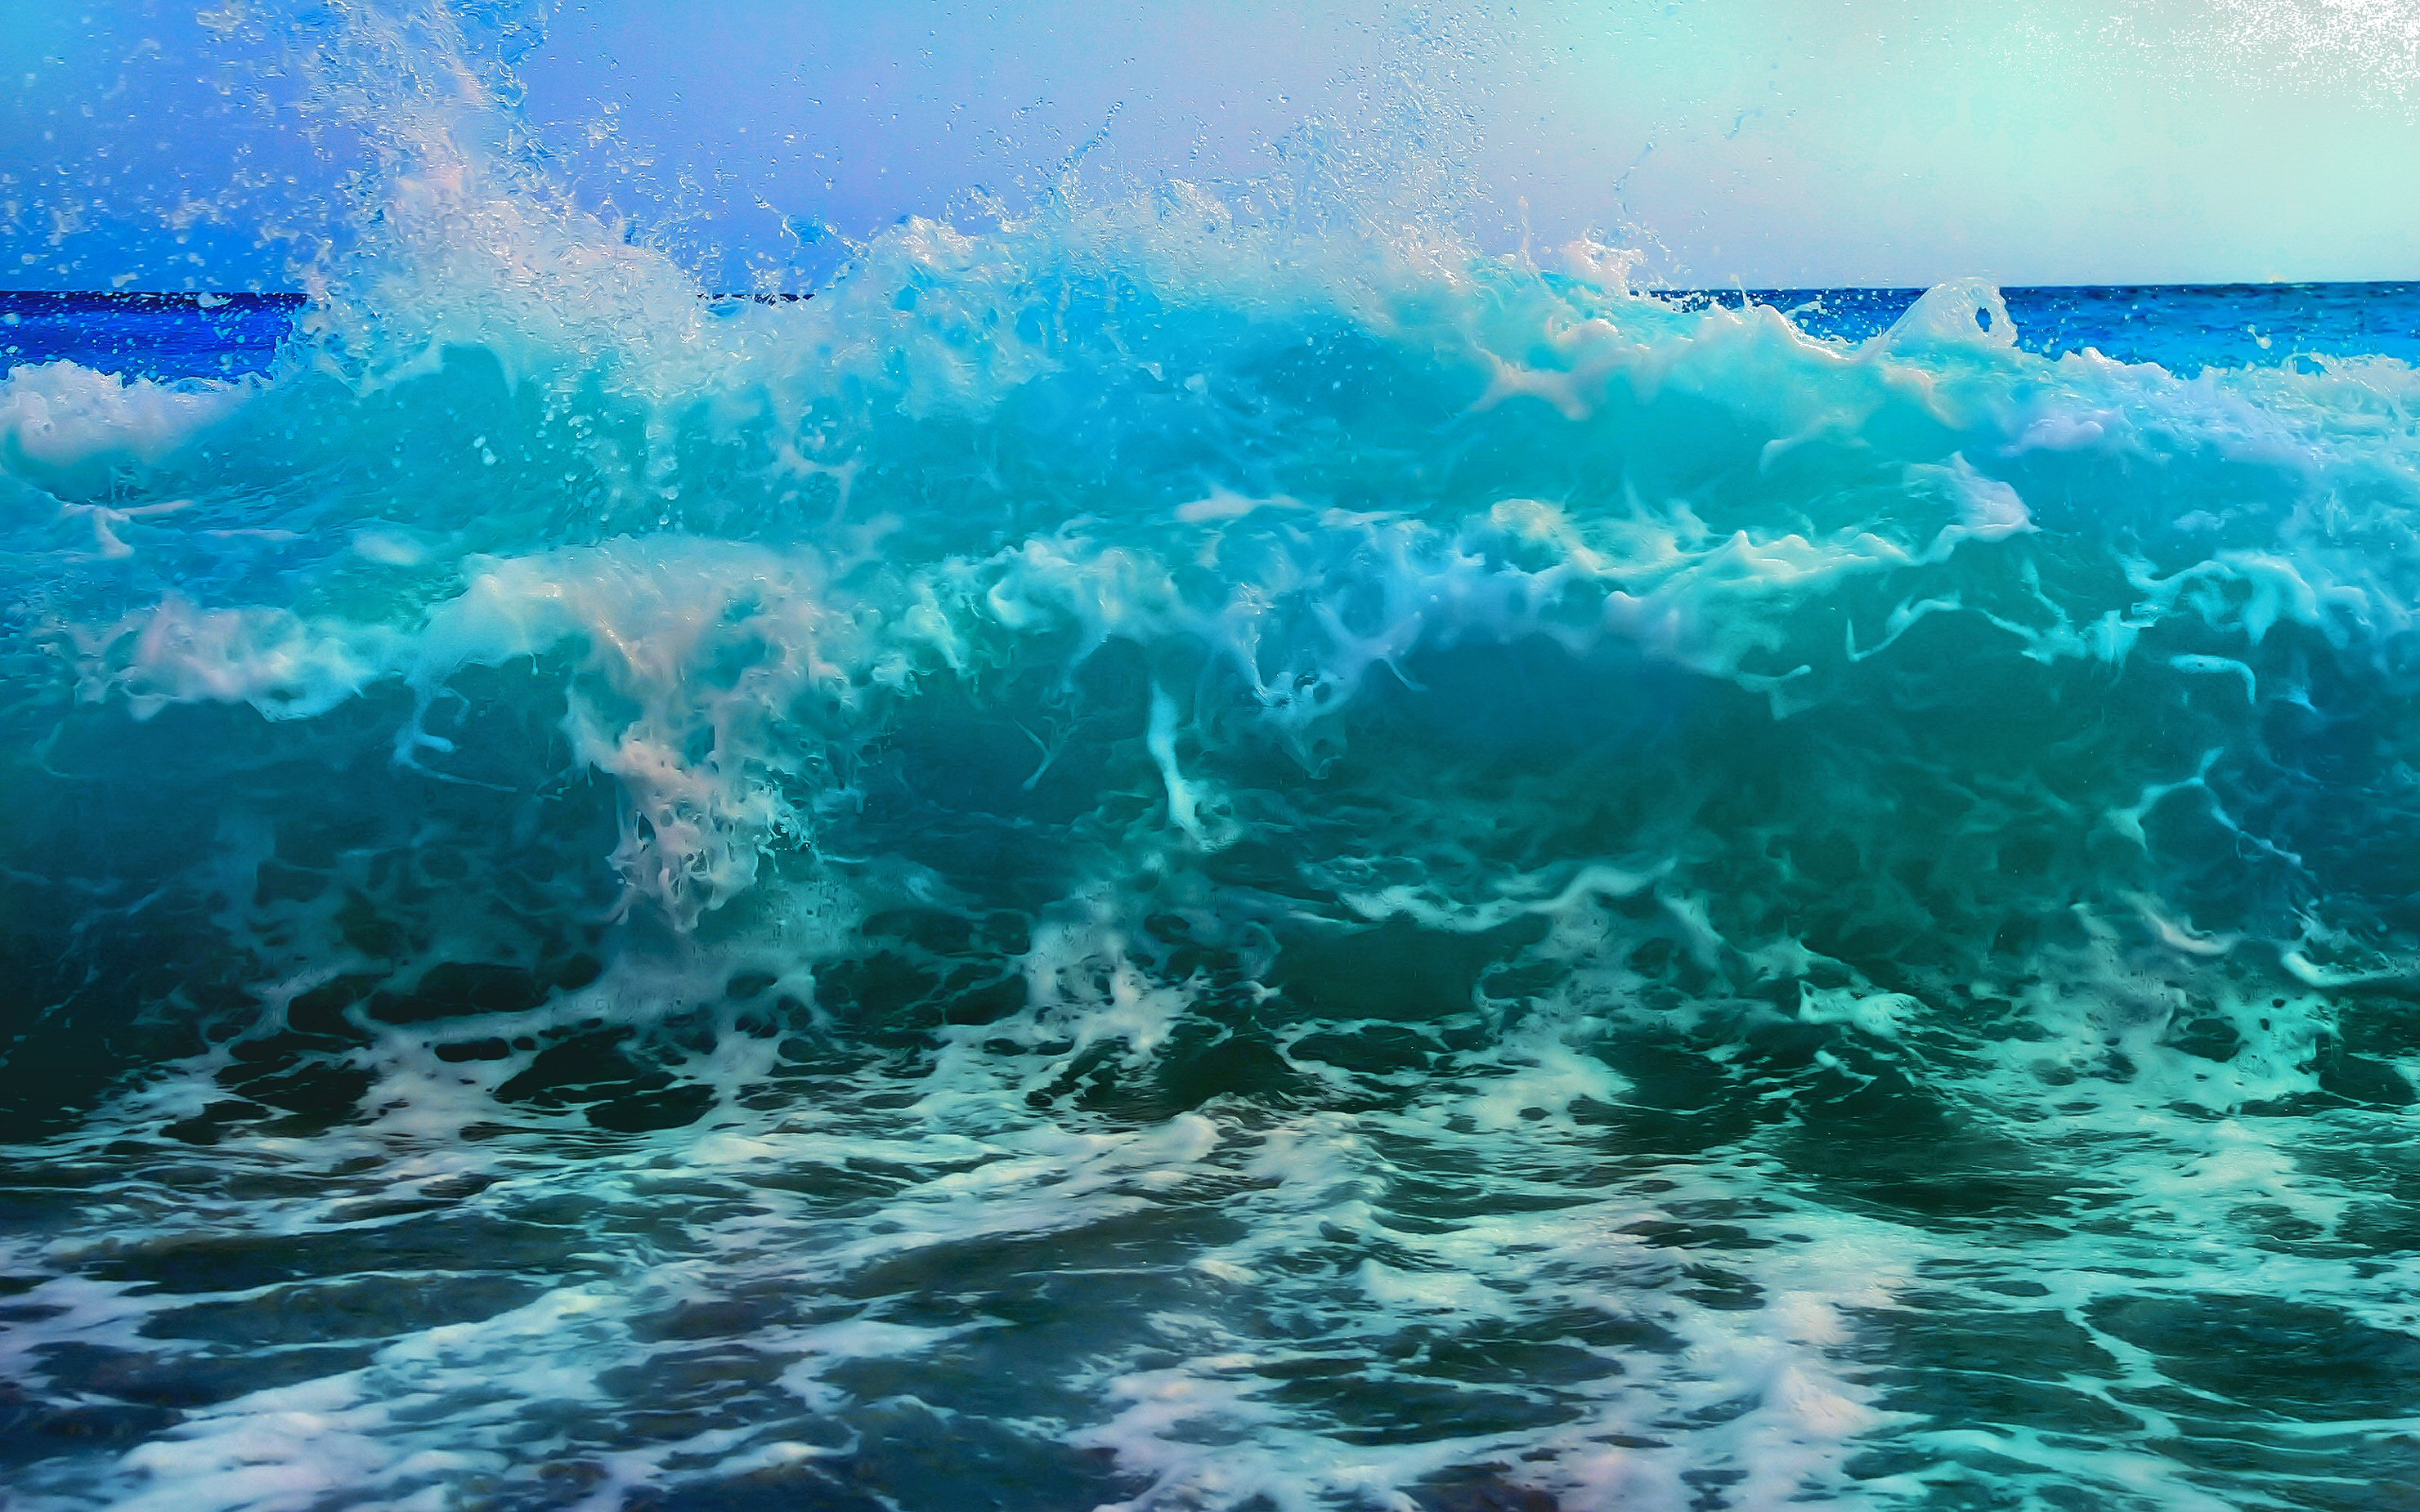 Beach Wave Parallax Hd Iphone Ipad Wallpaper: Animated Ocean Waves Wallpaper